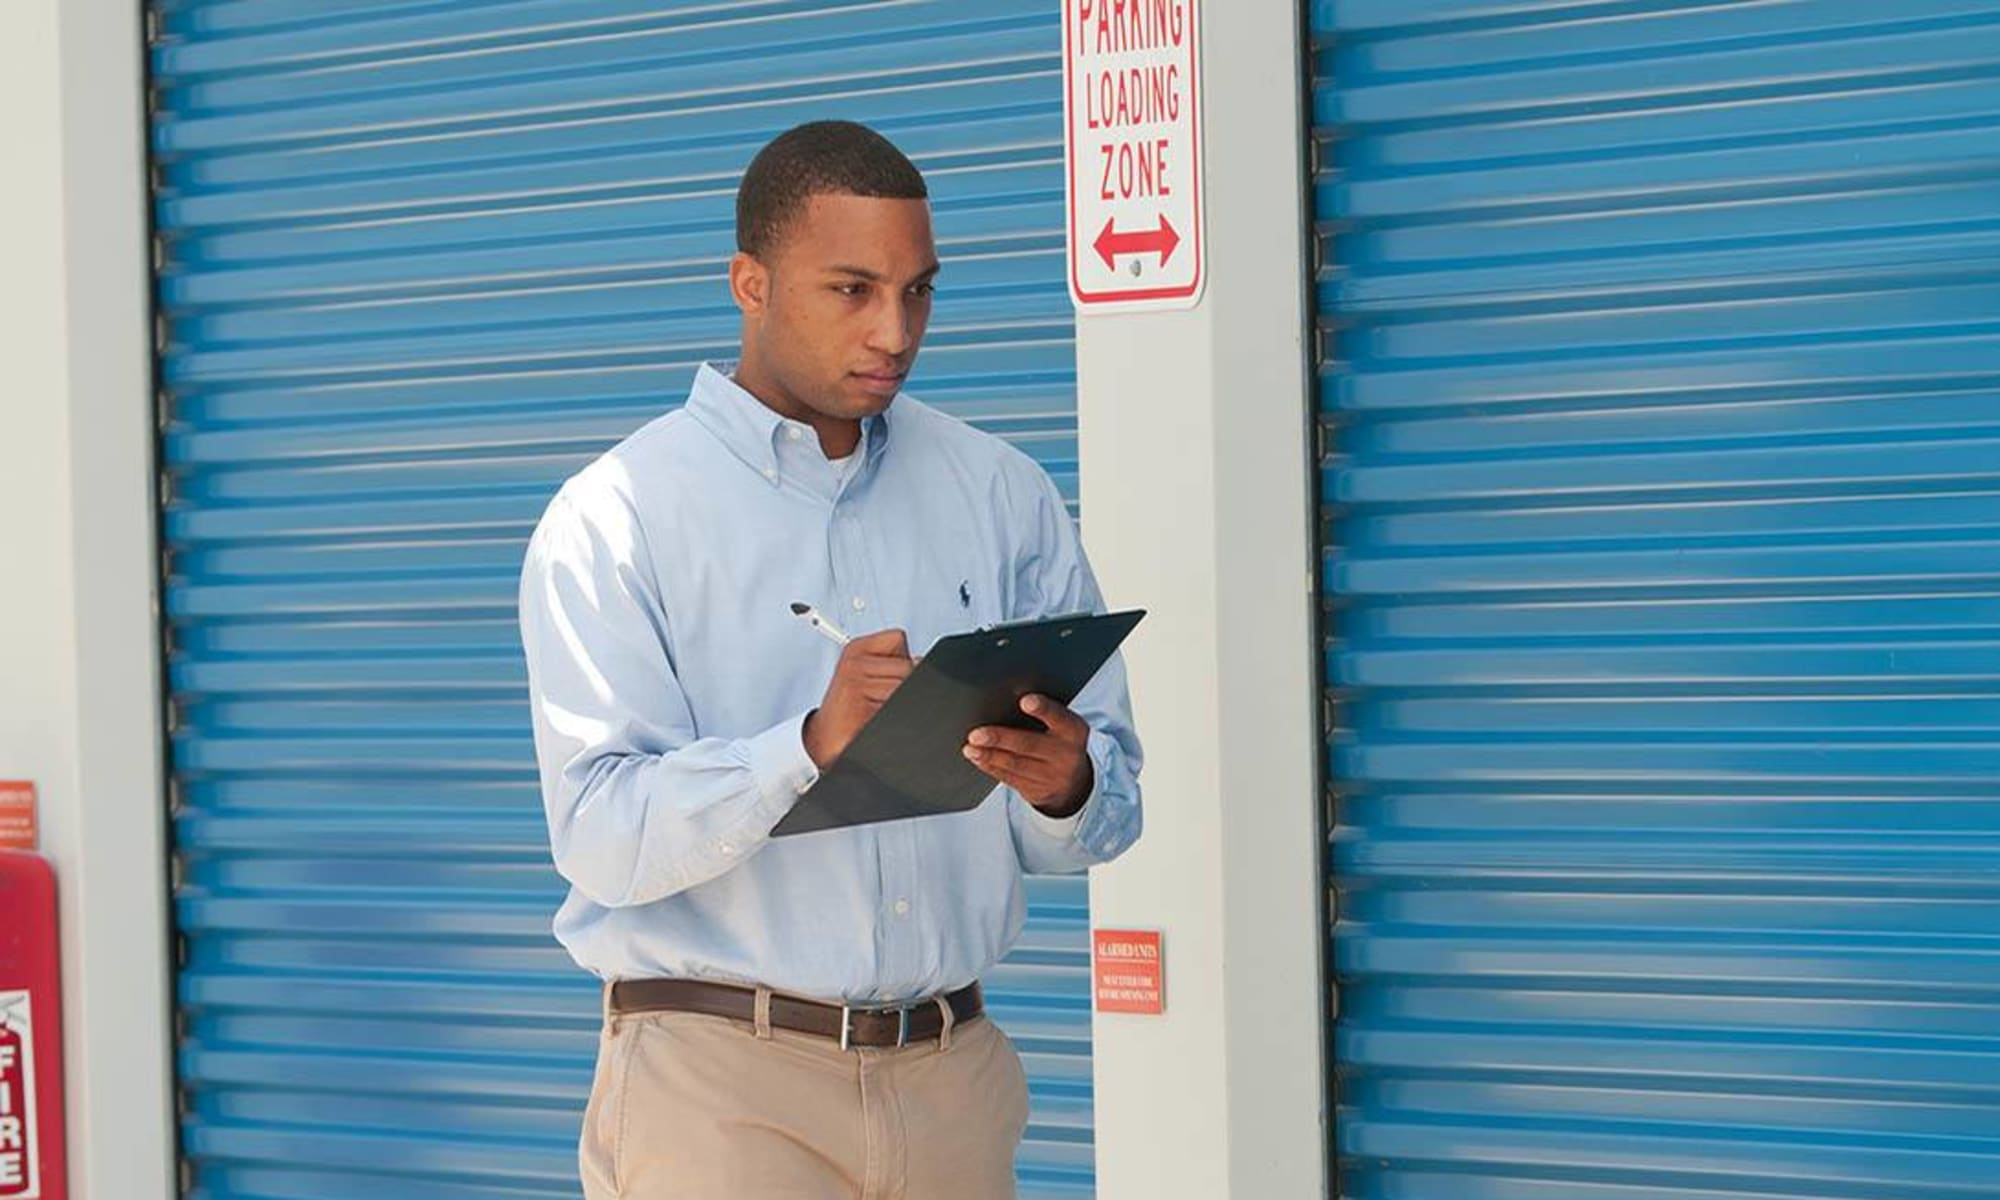 Daily property inspection by the manager at Virginia Varsity Storage in Salem, Virginia